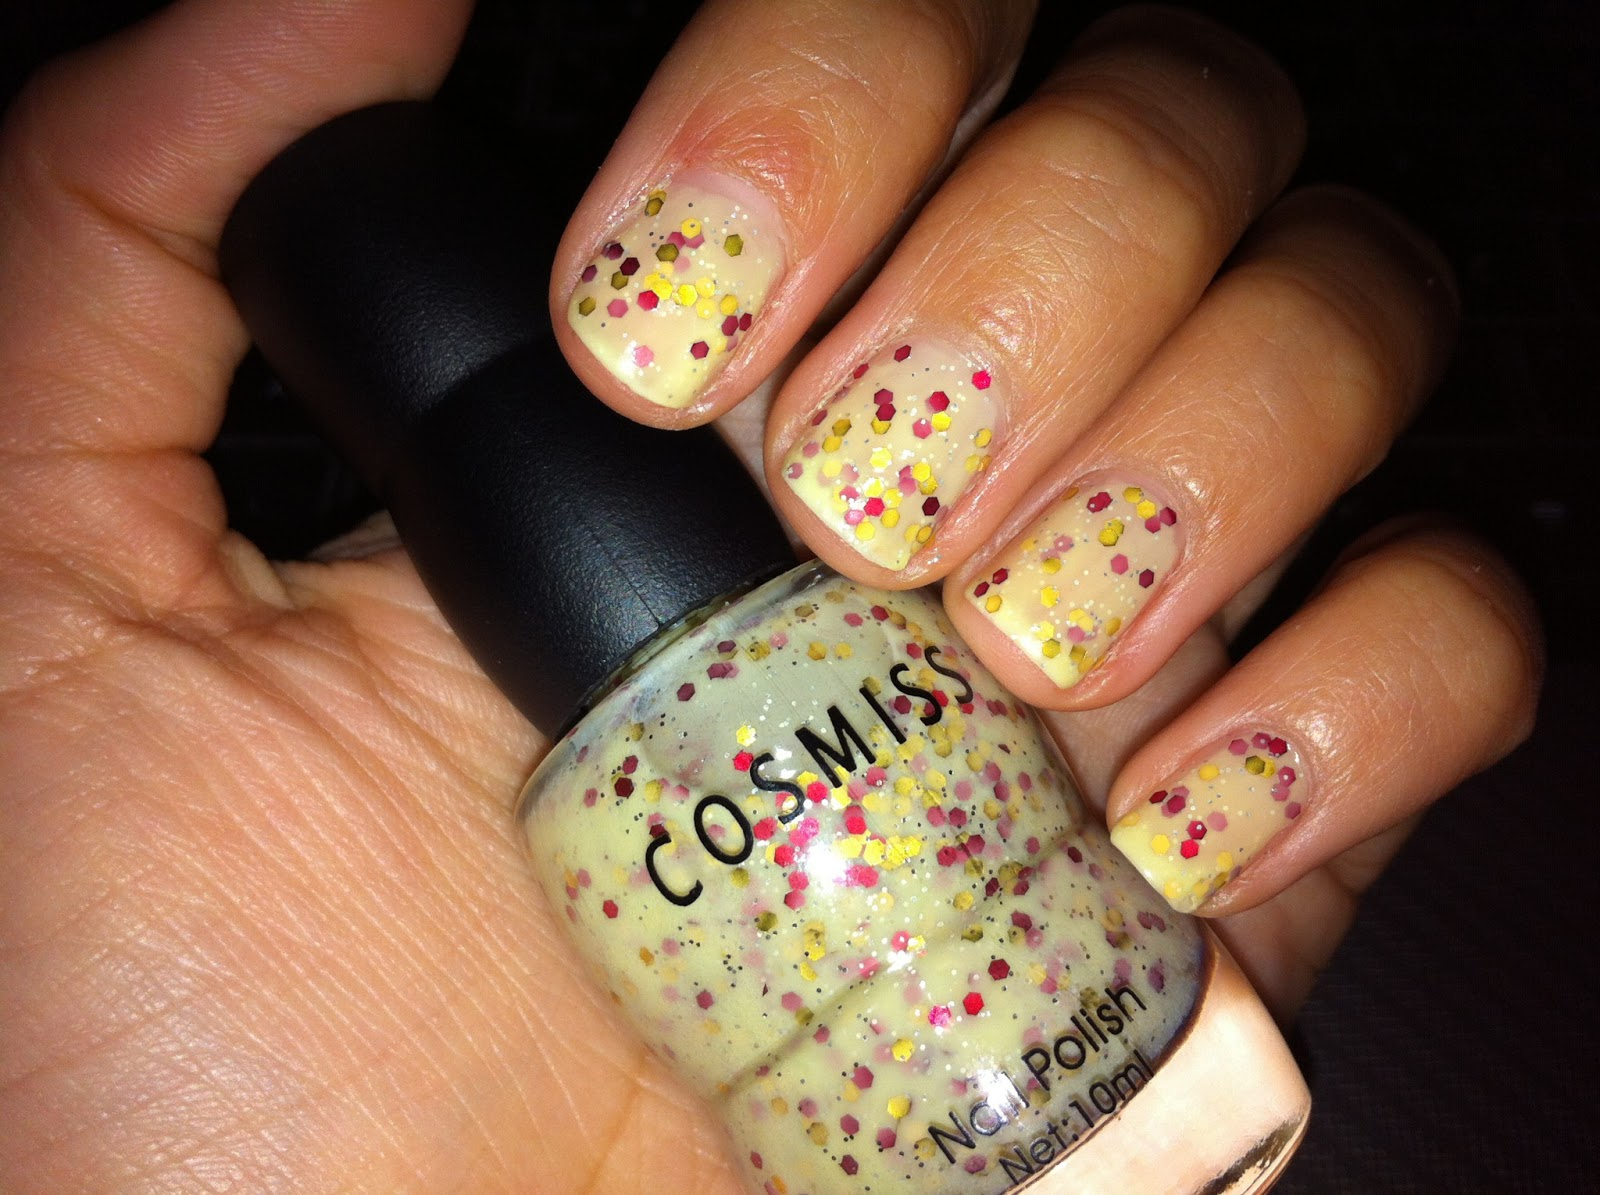 FairyAna Born Pretty Store glitter nail polish